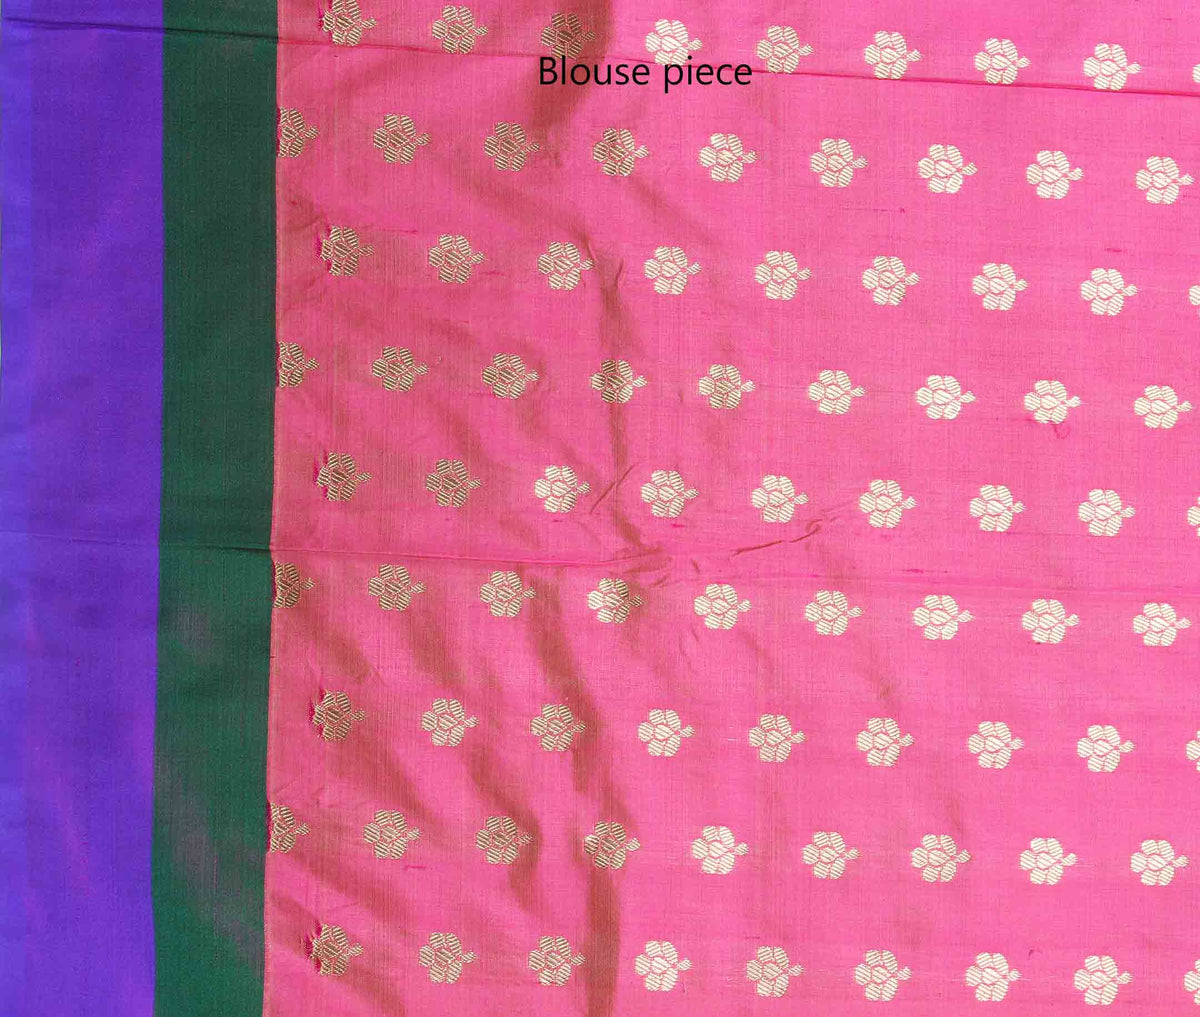 Pink Katan silk handwoven plain banarasi saree with paisley border (4) blouse